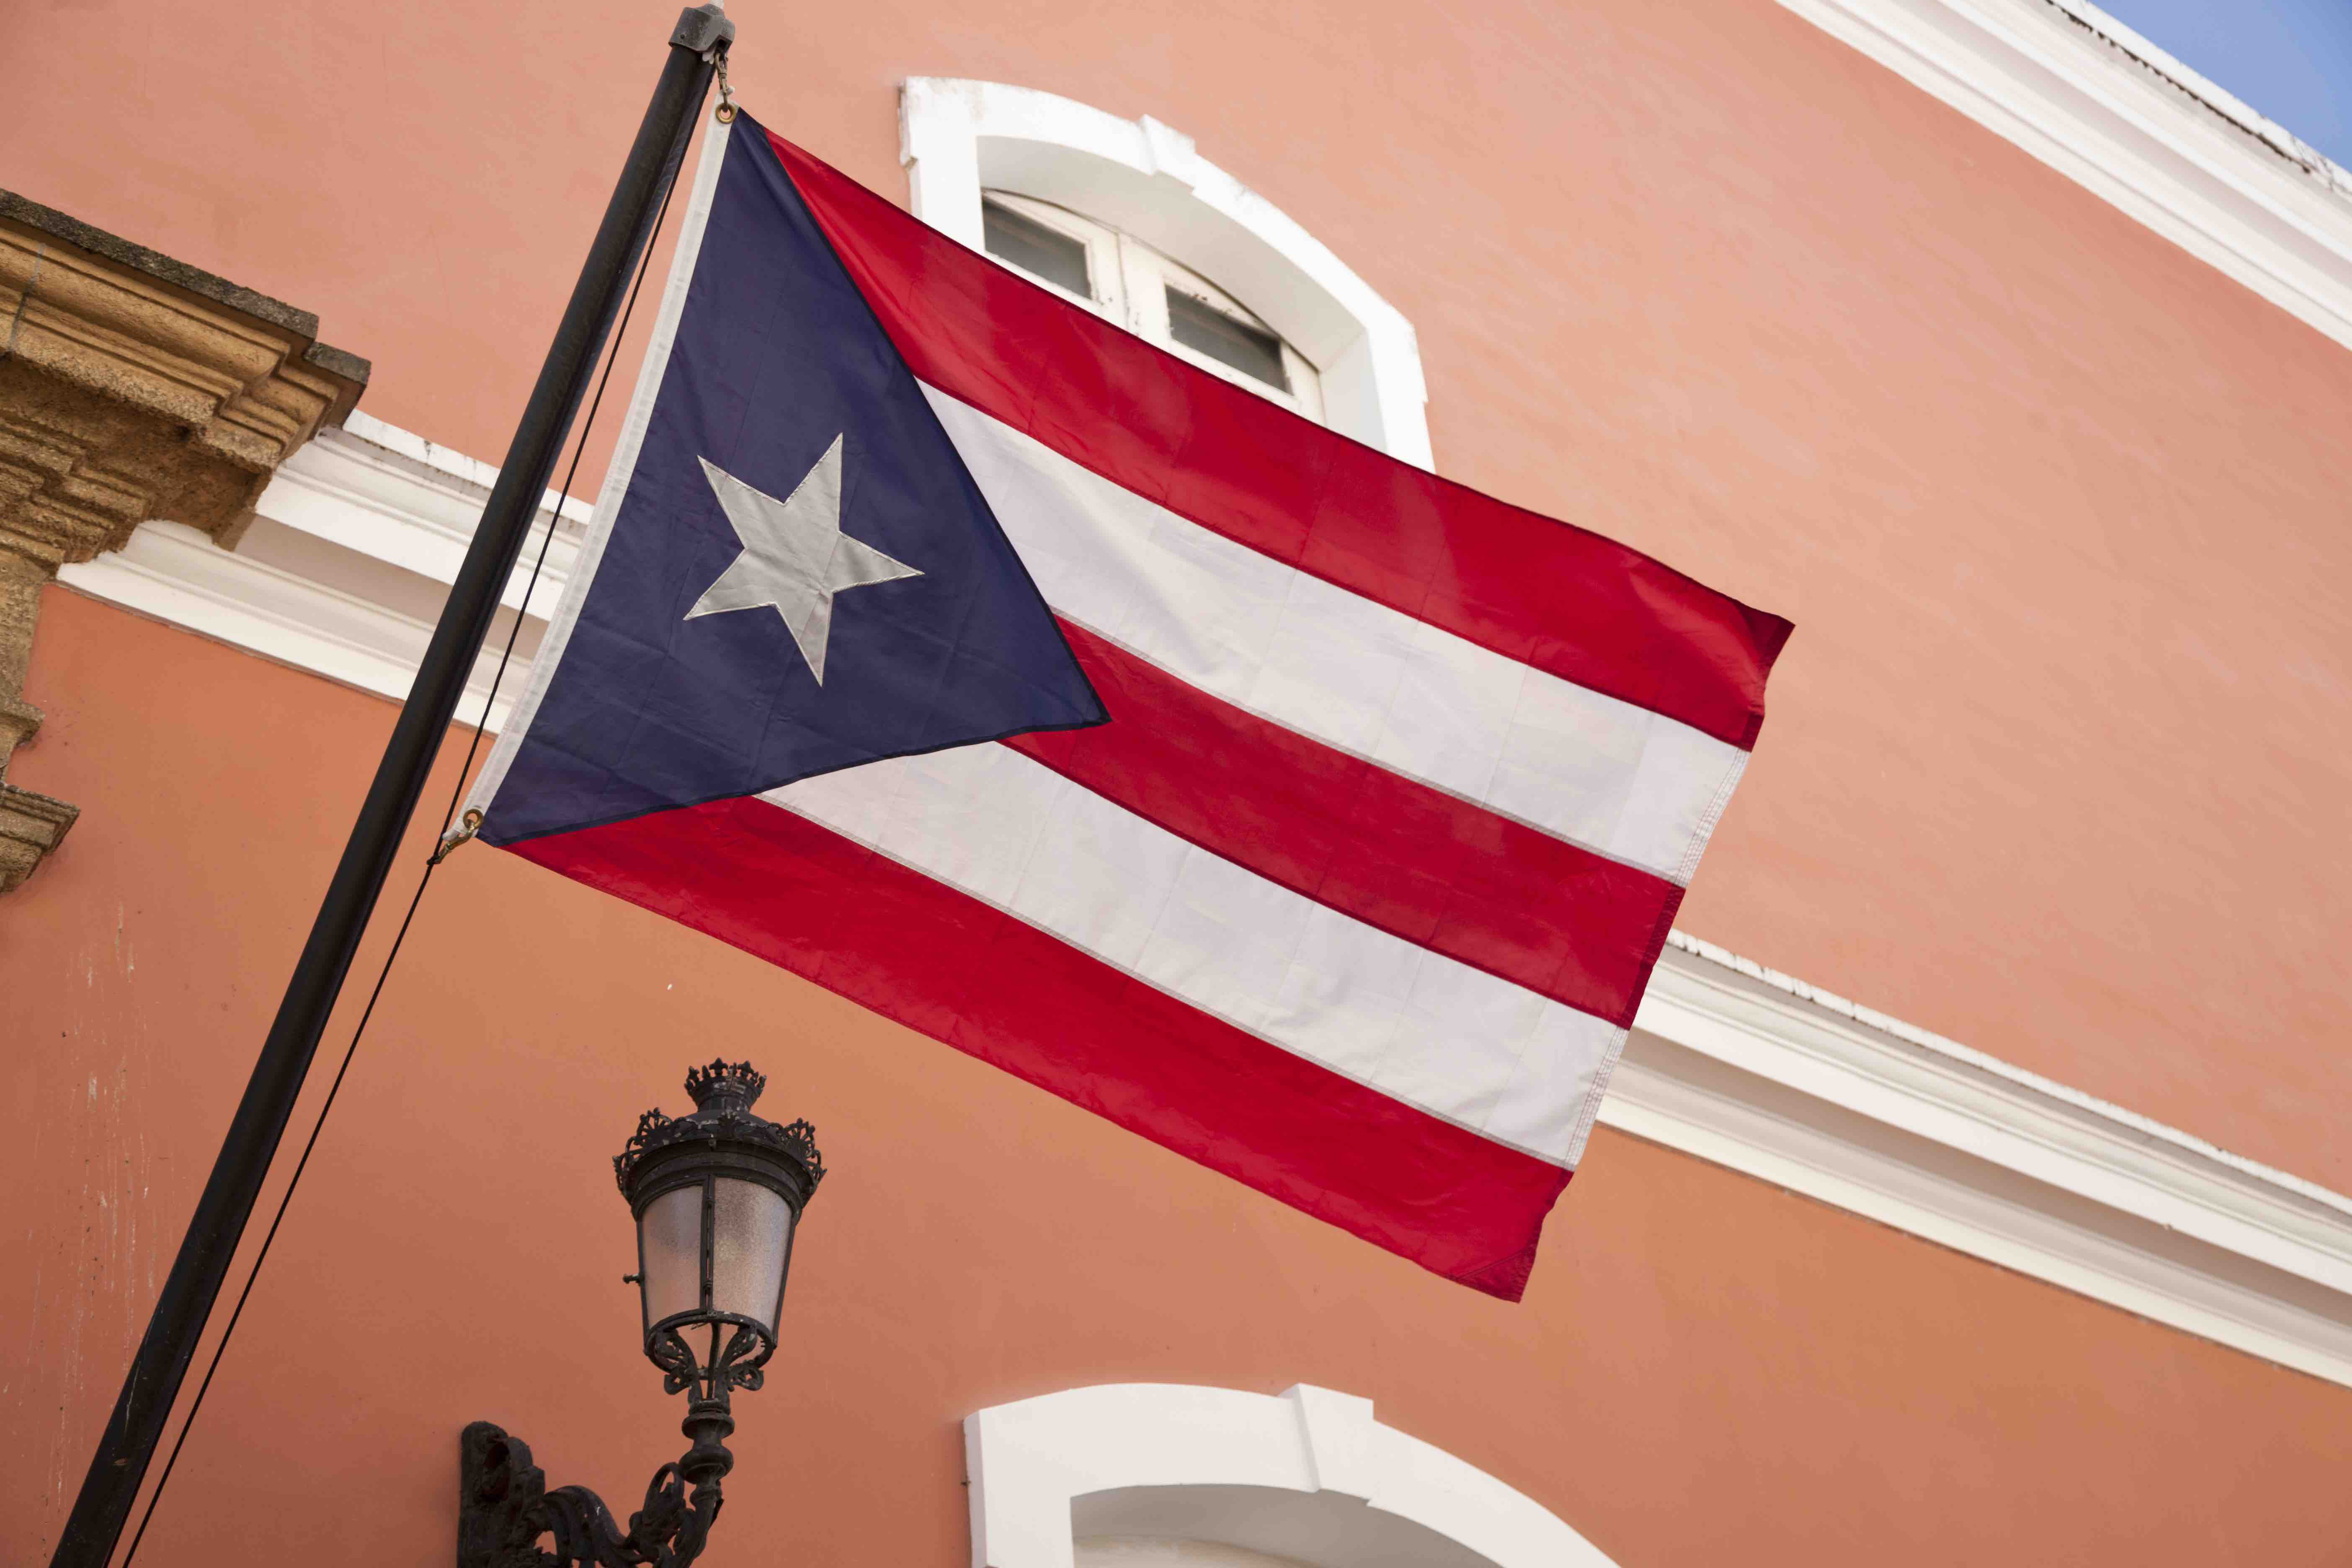 This Army Vet Put a Puerto Rican Flag Outside Her House & Her HOA Is Demanding She Take it Down